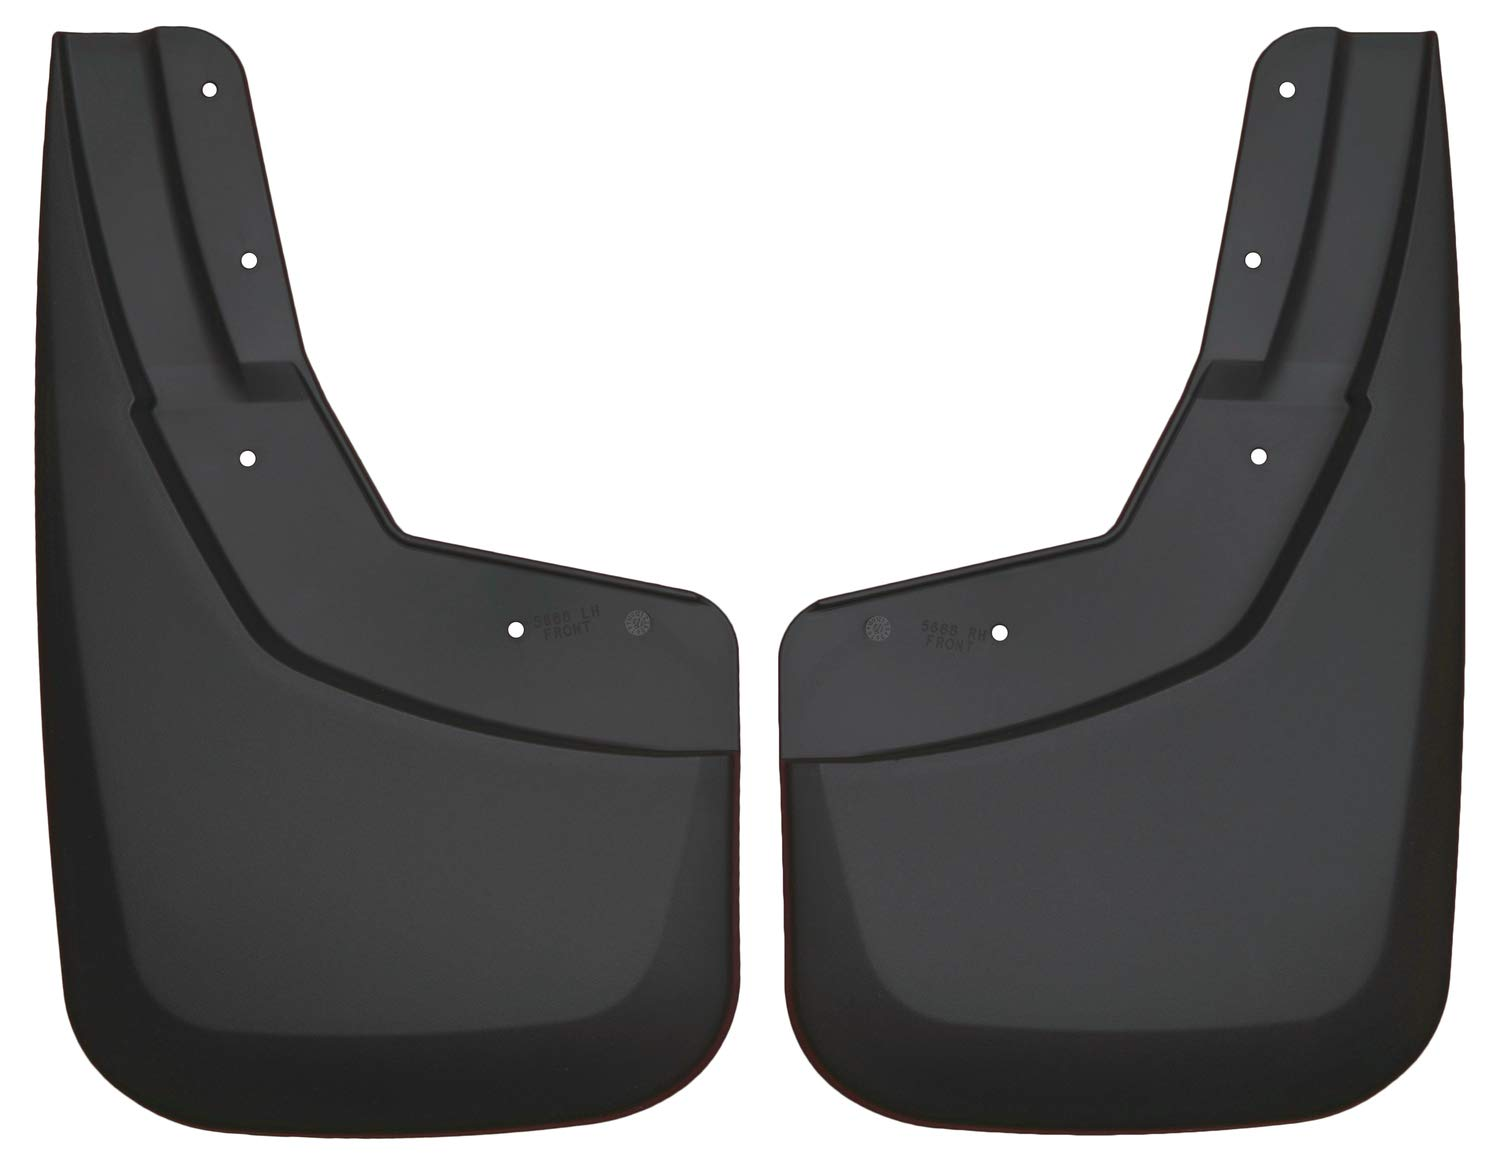 Husky Liners Custom Fit Front Mudguard for Select Ford Escape/Mercury Mariner Models - Pack of 2 (Black): Amazon.es: Coche y moto